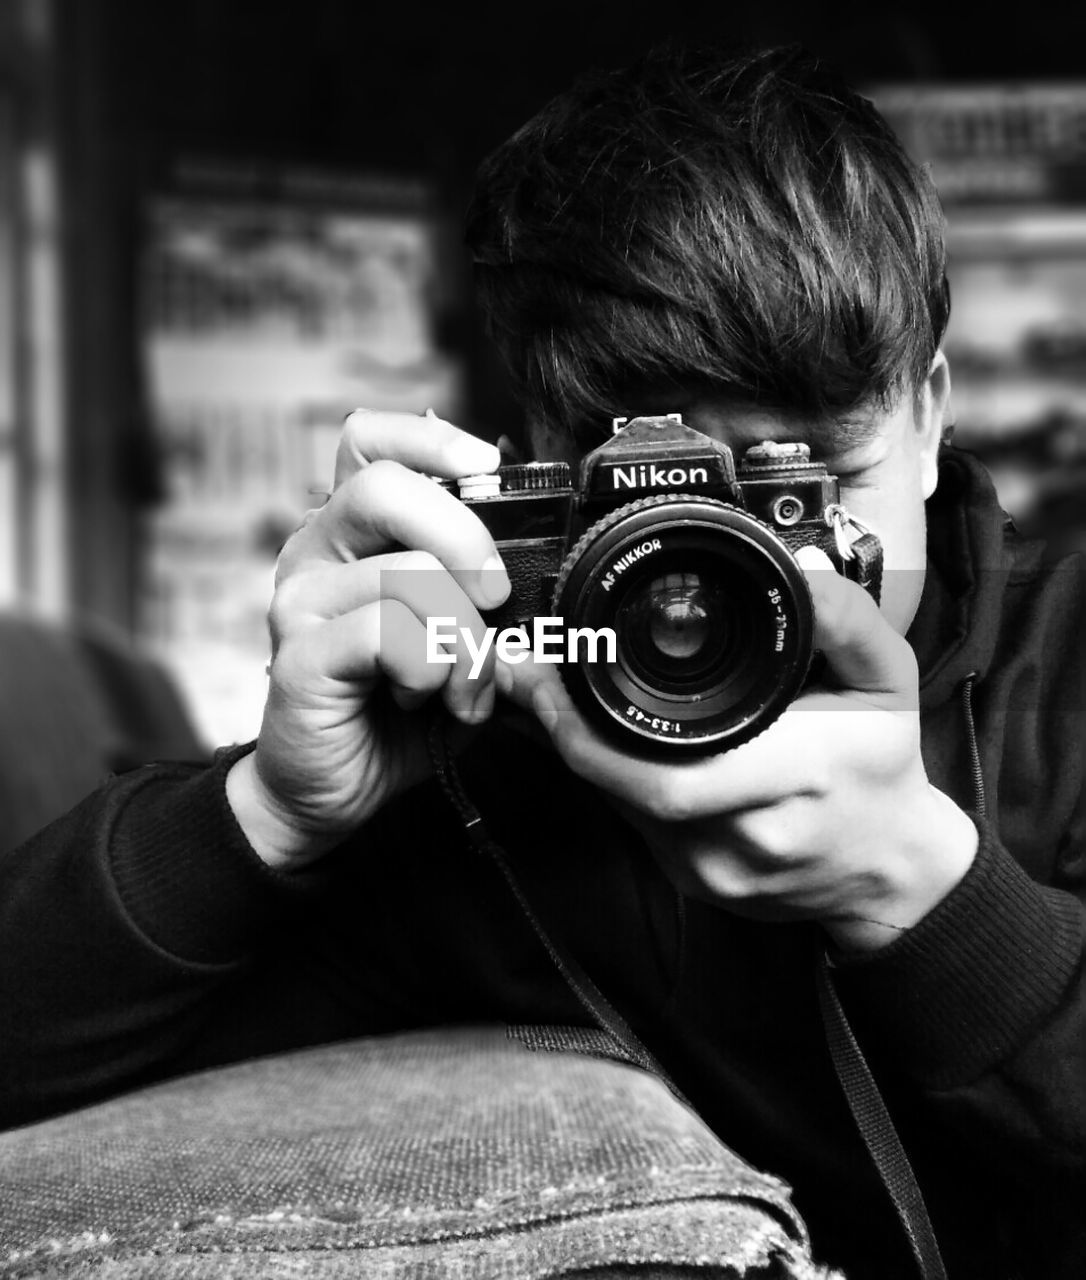 photography themes, camera - photographic equipment, real people, photographing, one person, holding, focus on foreground, leisure activity, digital camera, photographer, technology, childhood, digital single-lens reflex camera, indoors, headshot, camera, concentration, boys, lifestyles, slr camera, day, close-up, human hand, adult, people